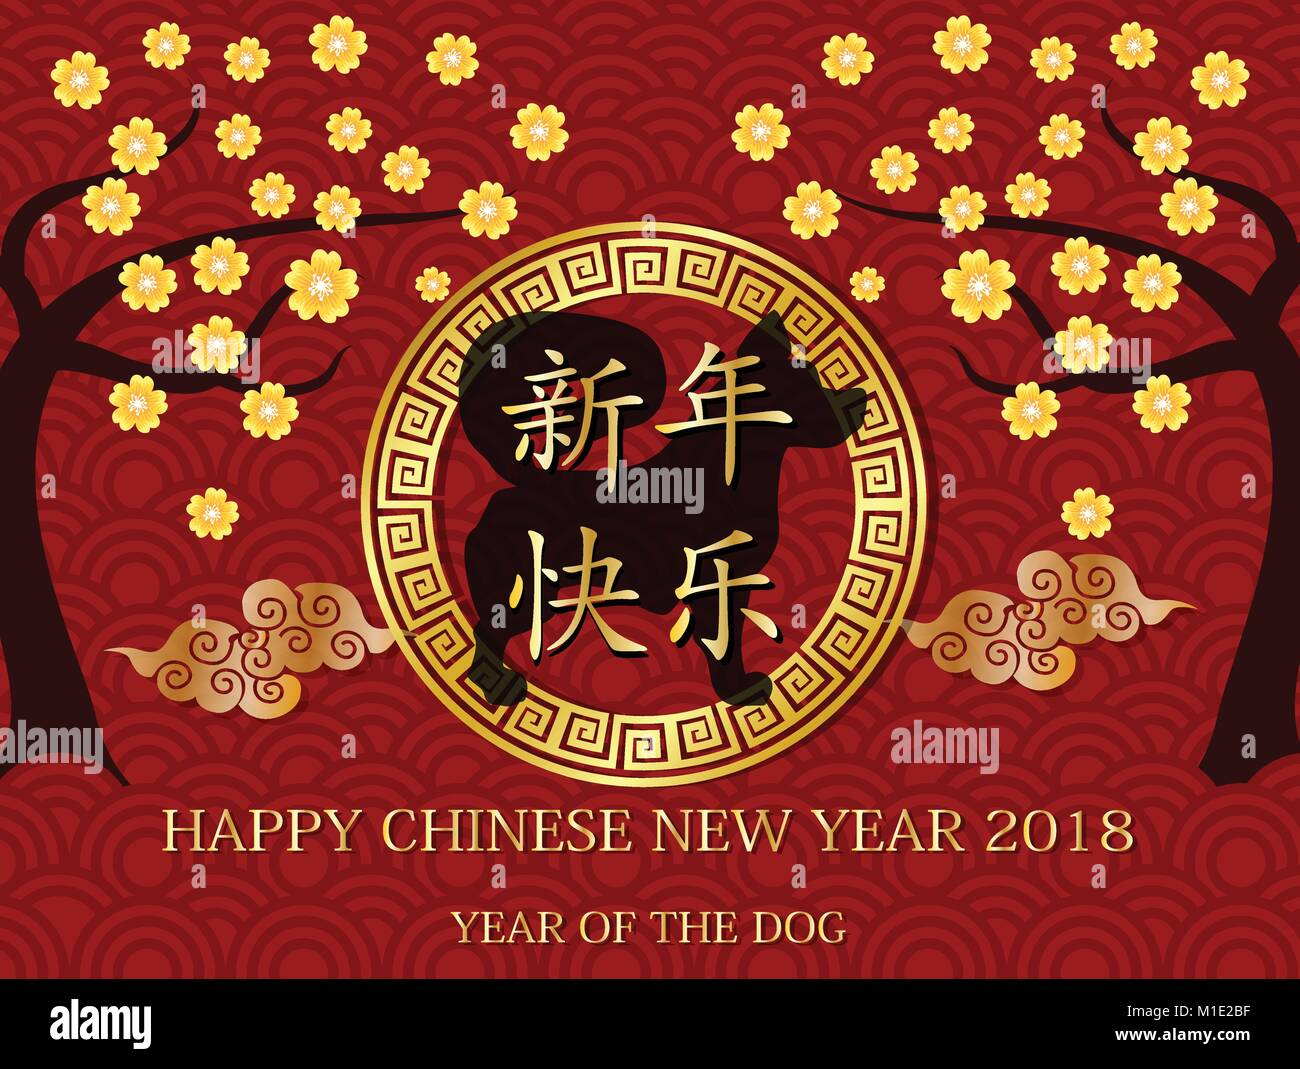 2018 Happy Chinese New Year Design Year Of The Dog Happy Dog Year Stock Vector Image Art Alamy